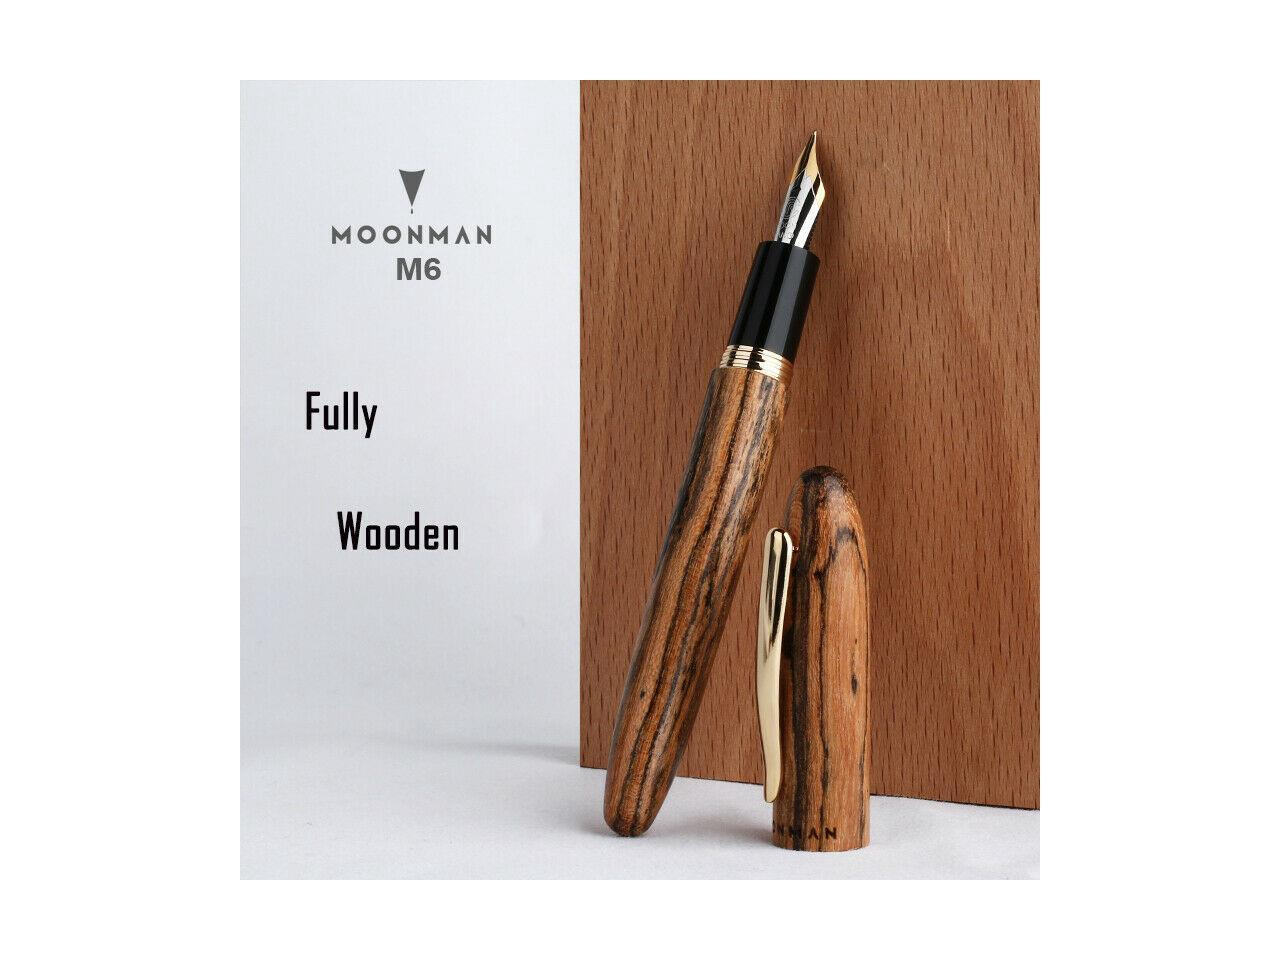 Includes a gift box. Handcrafted Iridium Gold Fountain Pen with Wooden Body